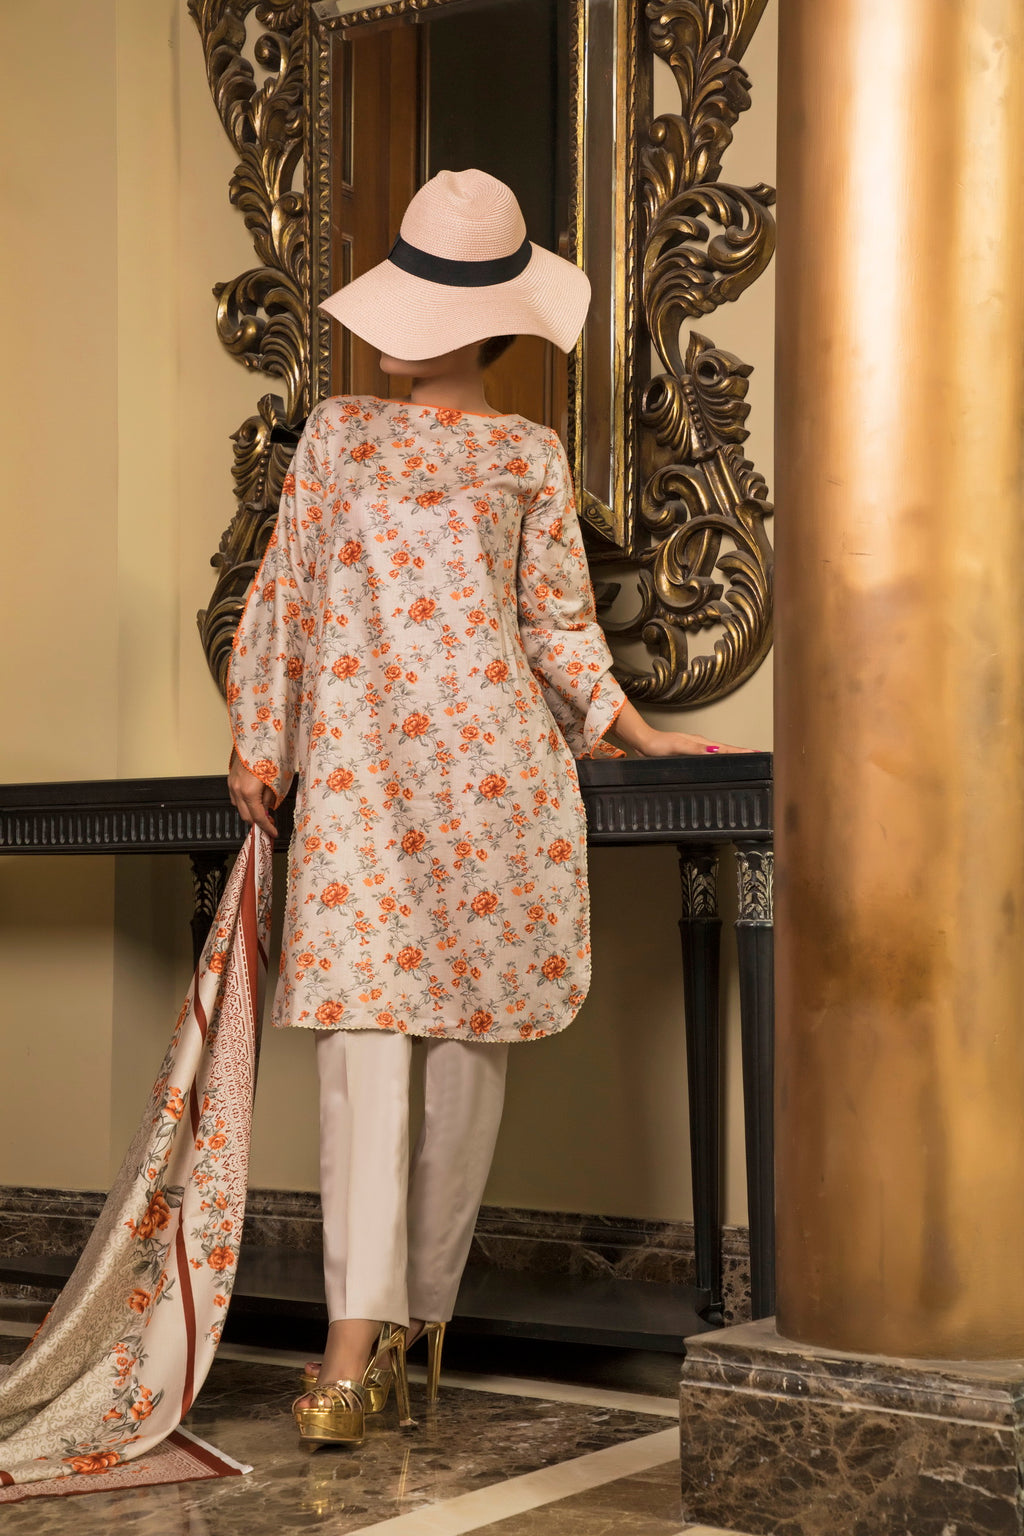 Unstitched Two Piece Shirt & Dupatta SSL-191-03B